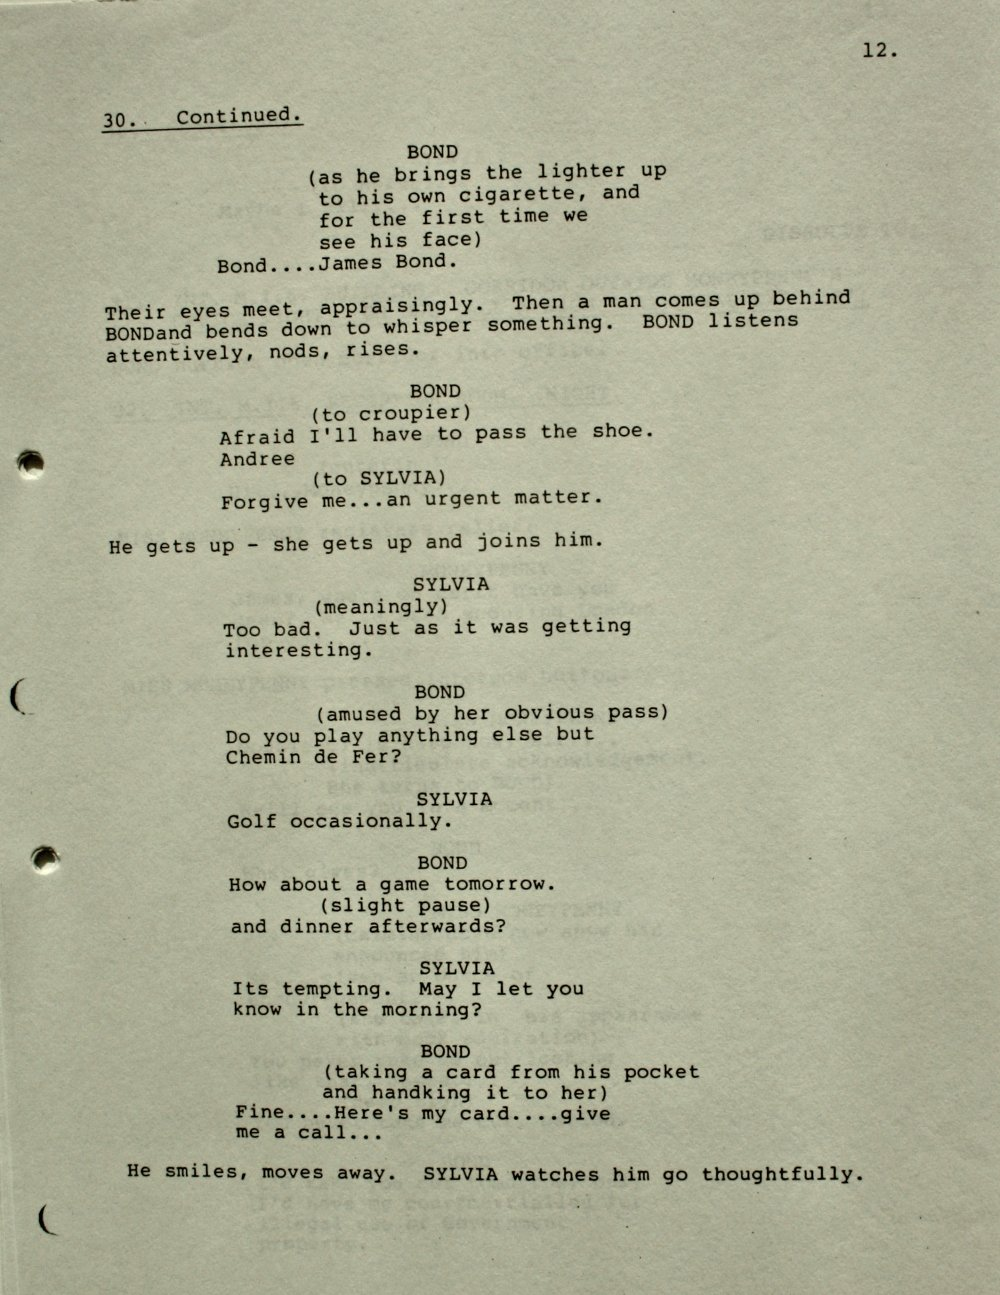 Fifth draft screenplay by Richard Maibaum, Wolf Mankowitz, and JM (Johanna) Harwood for Dr No (Eon Productions/MGM)